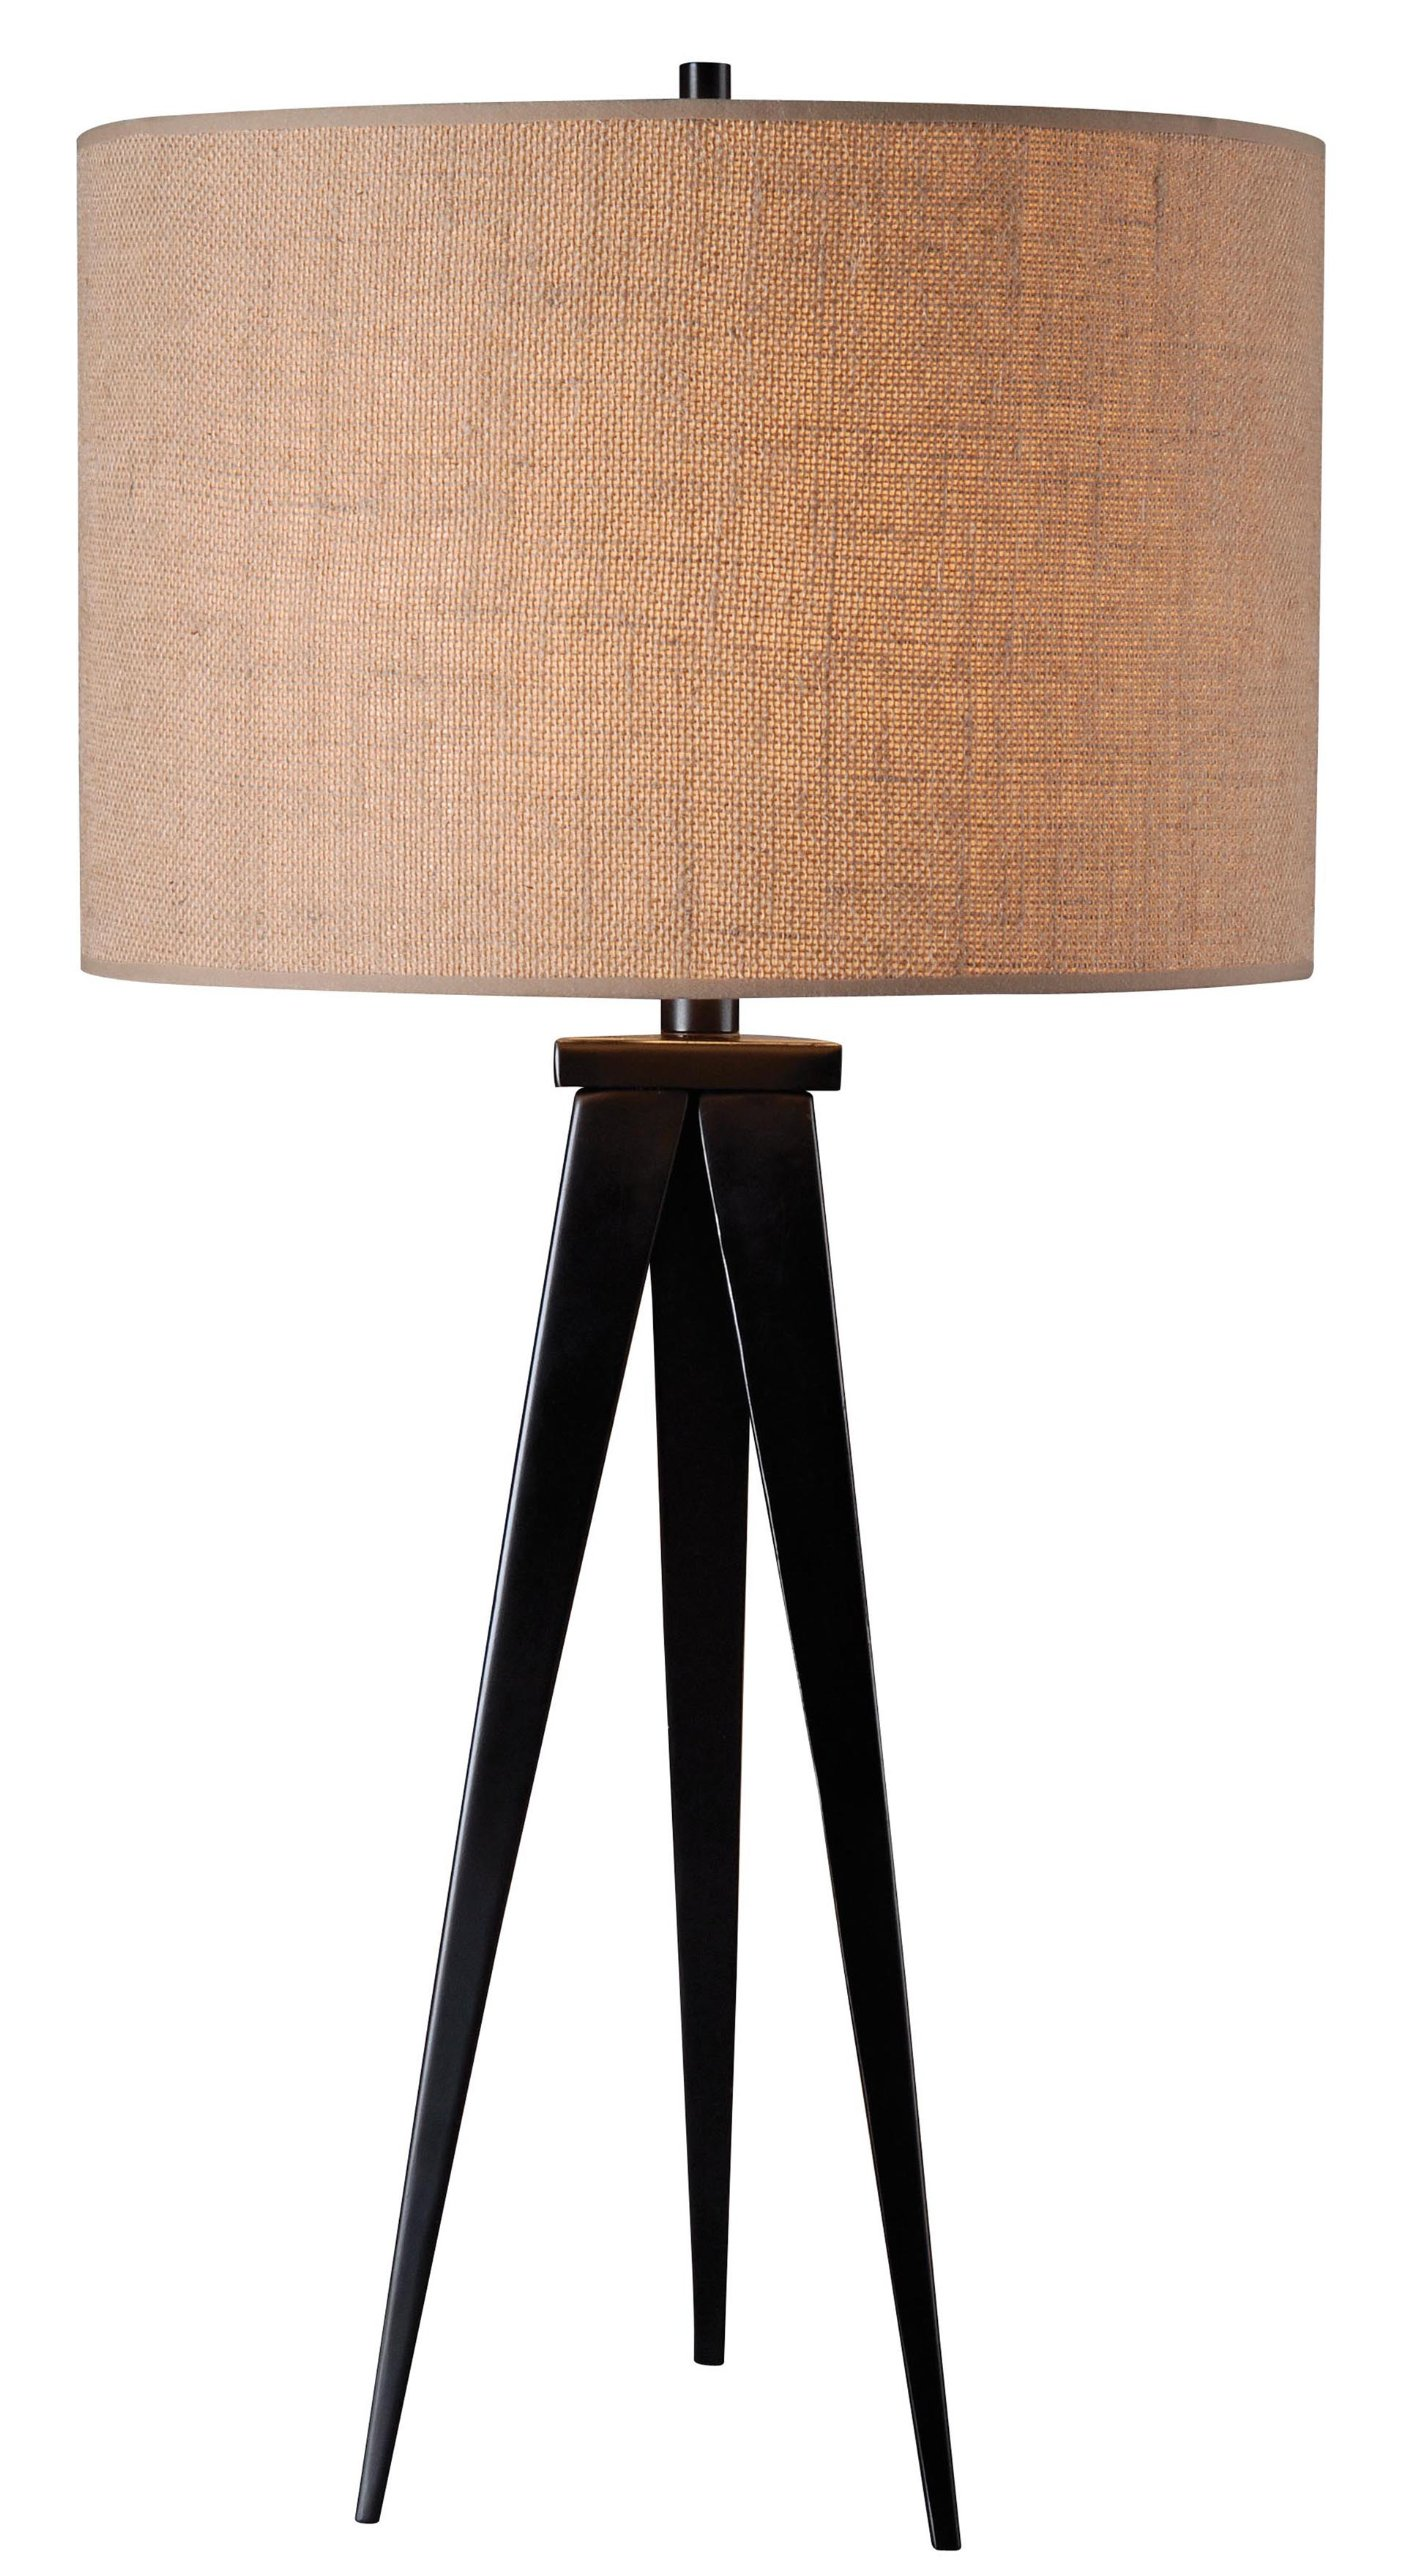 Kenroy Home 32262ORB Foster Table Lamp, Oil Rubbed Bronze Finish